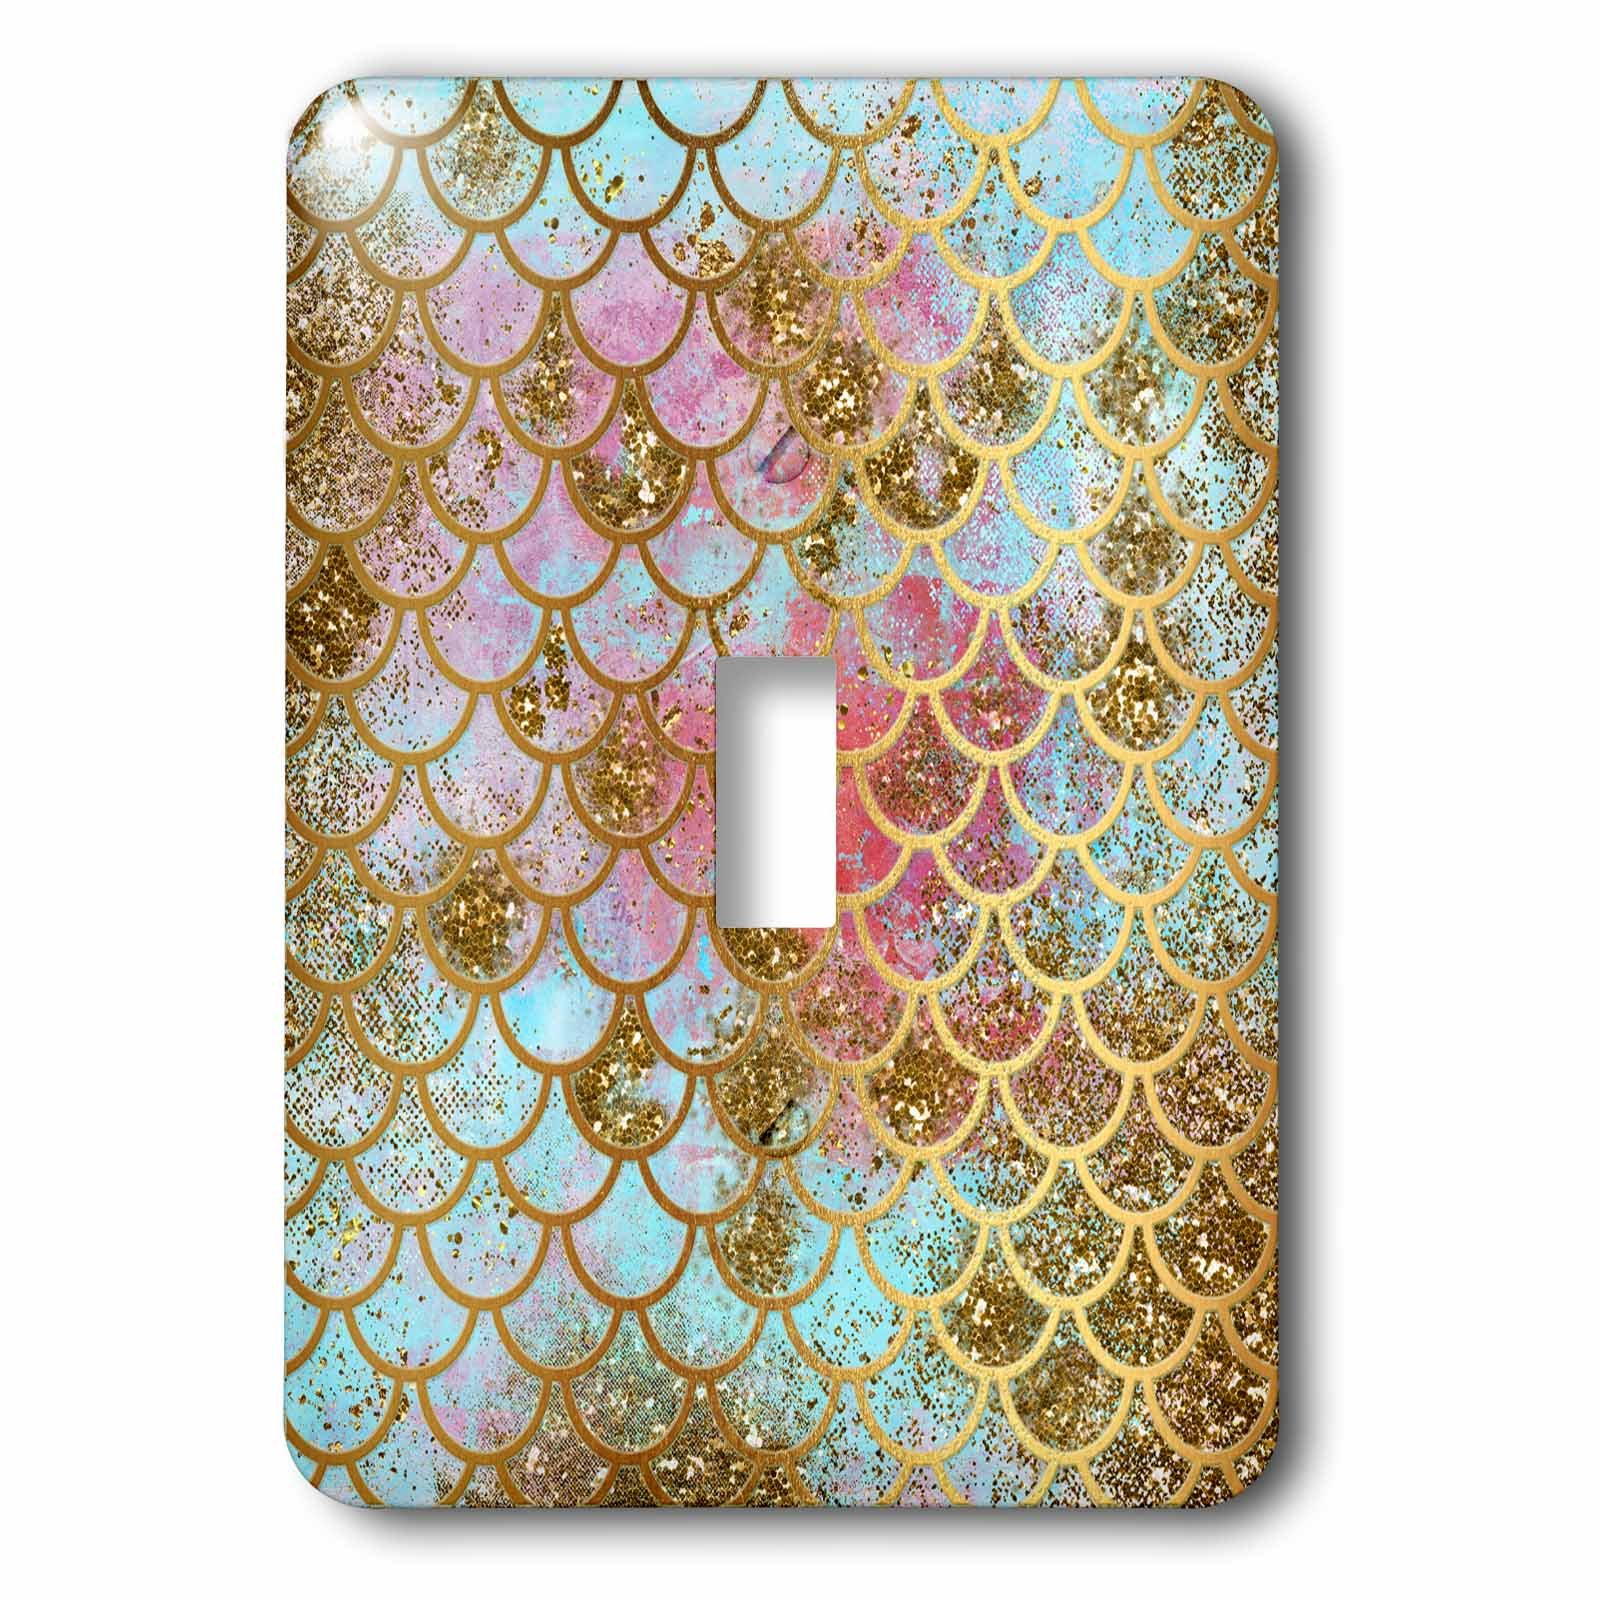 3dRose (lsp_266933_1) Single Toggle Switch (1) Sparkling Pink Luxury Elegant Mermaid Scales Glitter Effect Art Print